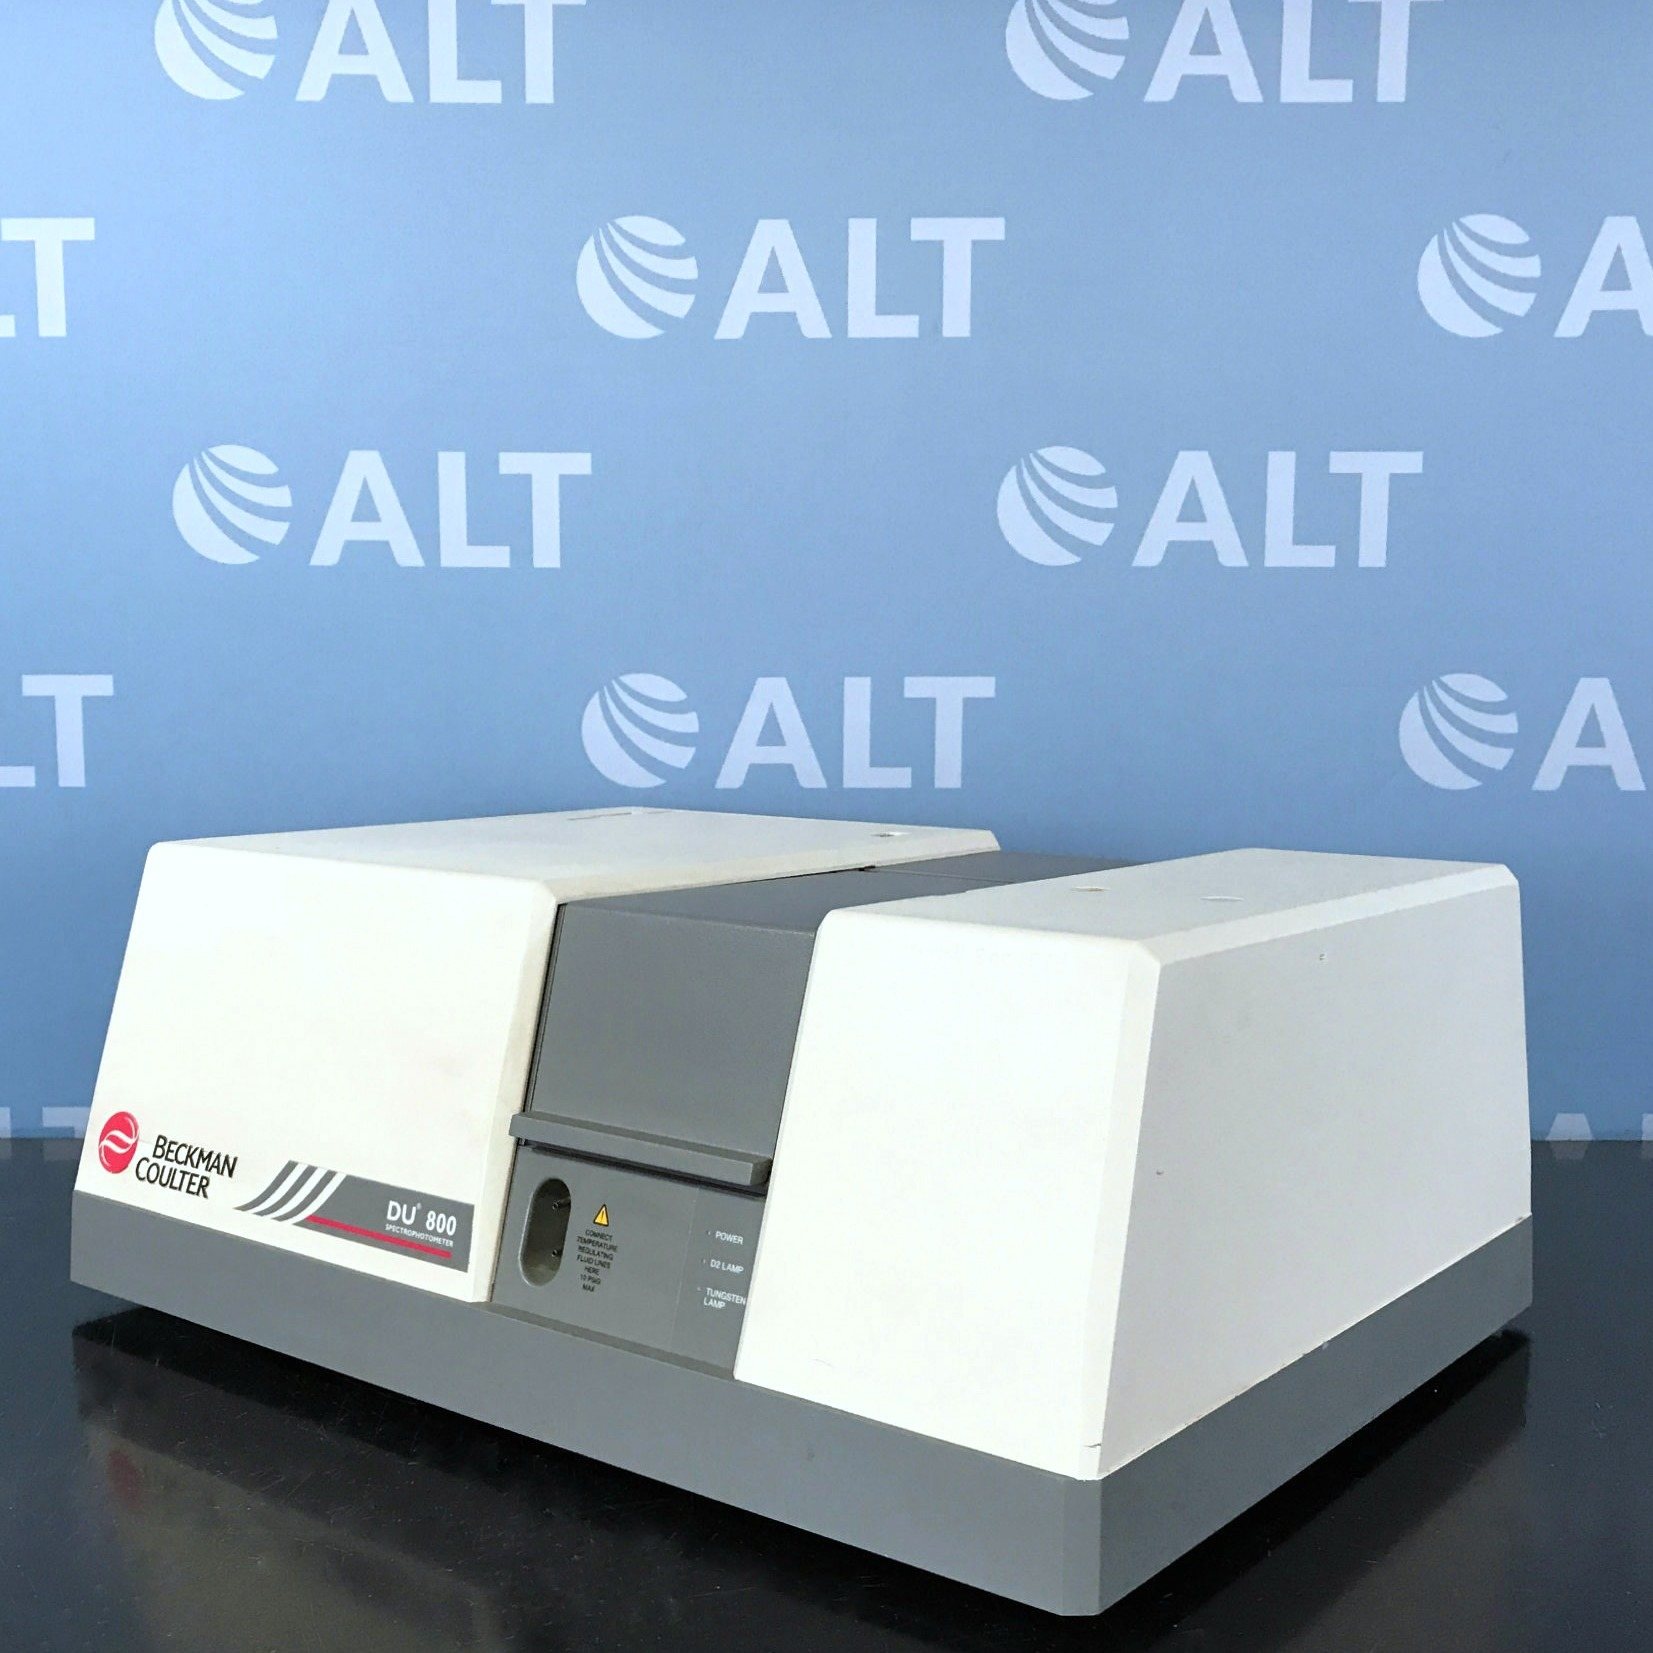 Beckman Coulter DU 800 UV/Visible Spectrophotometer Image